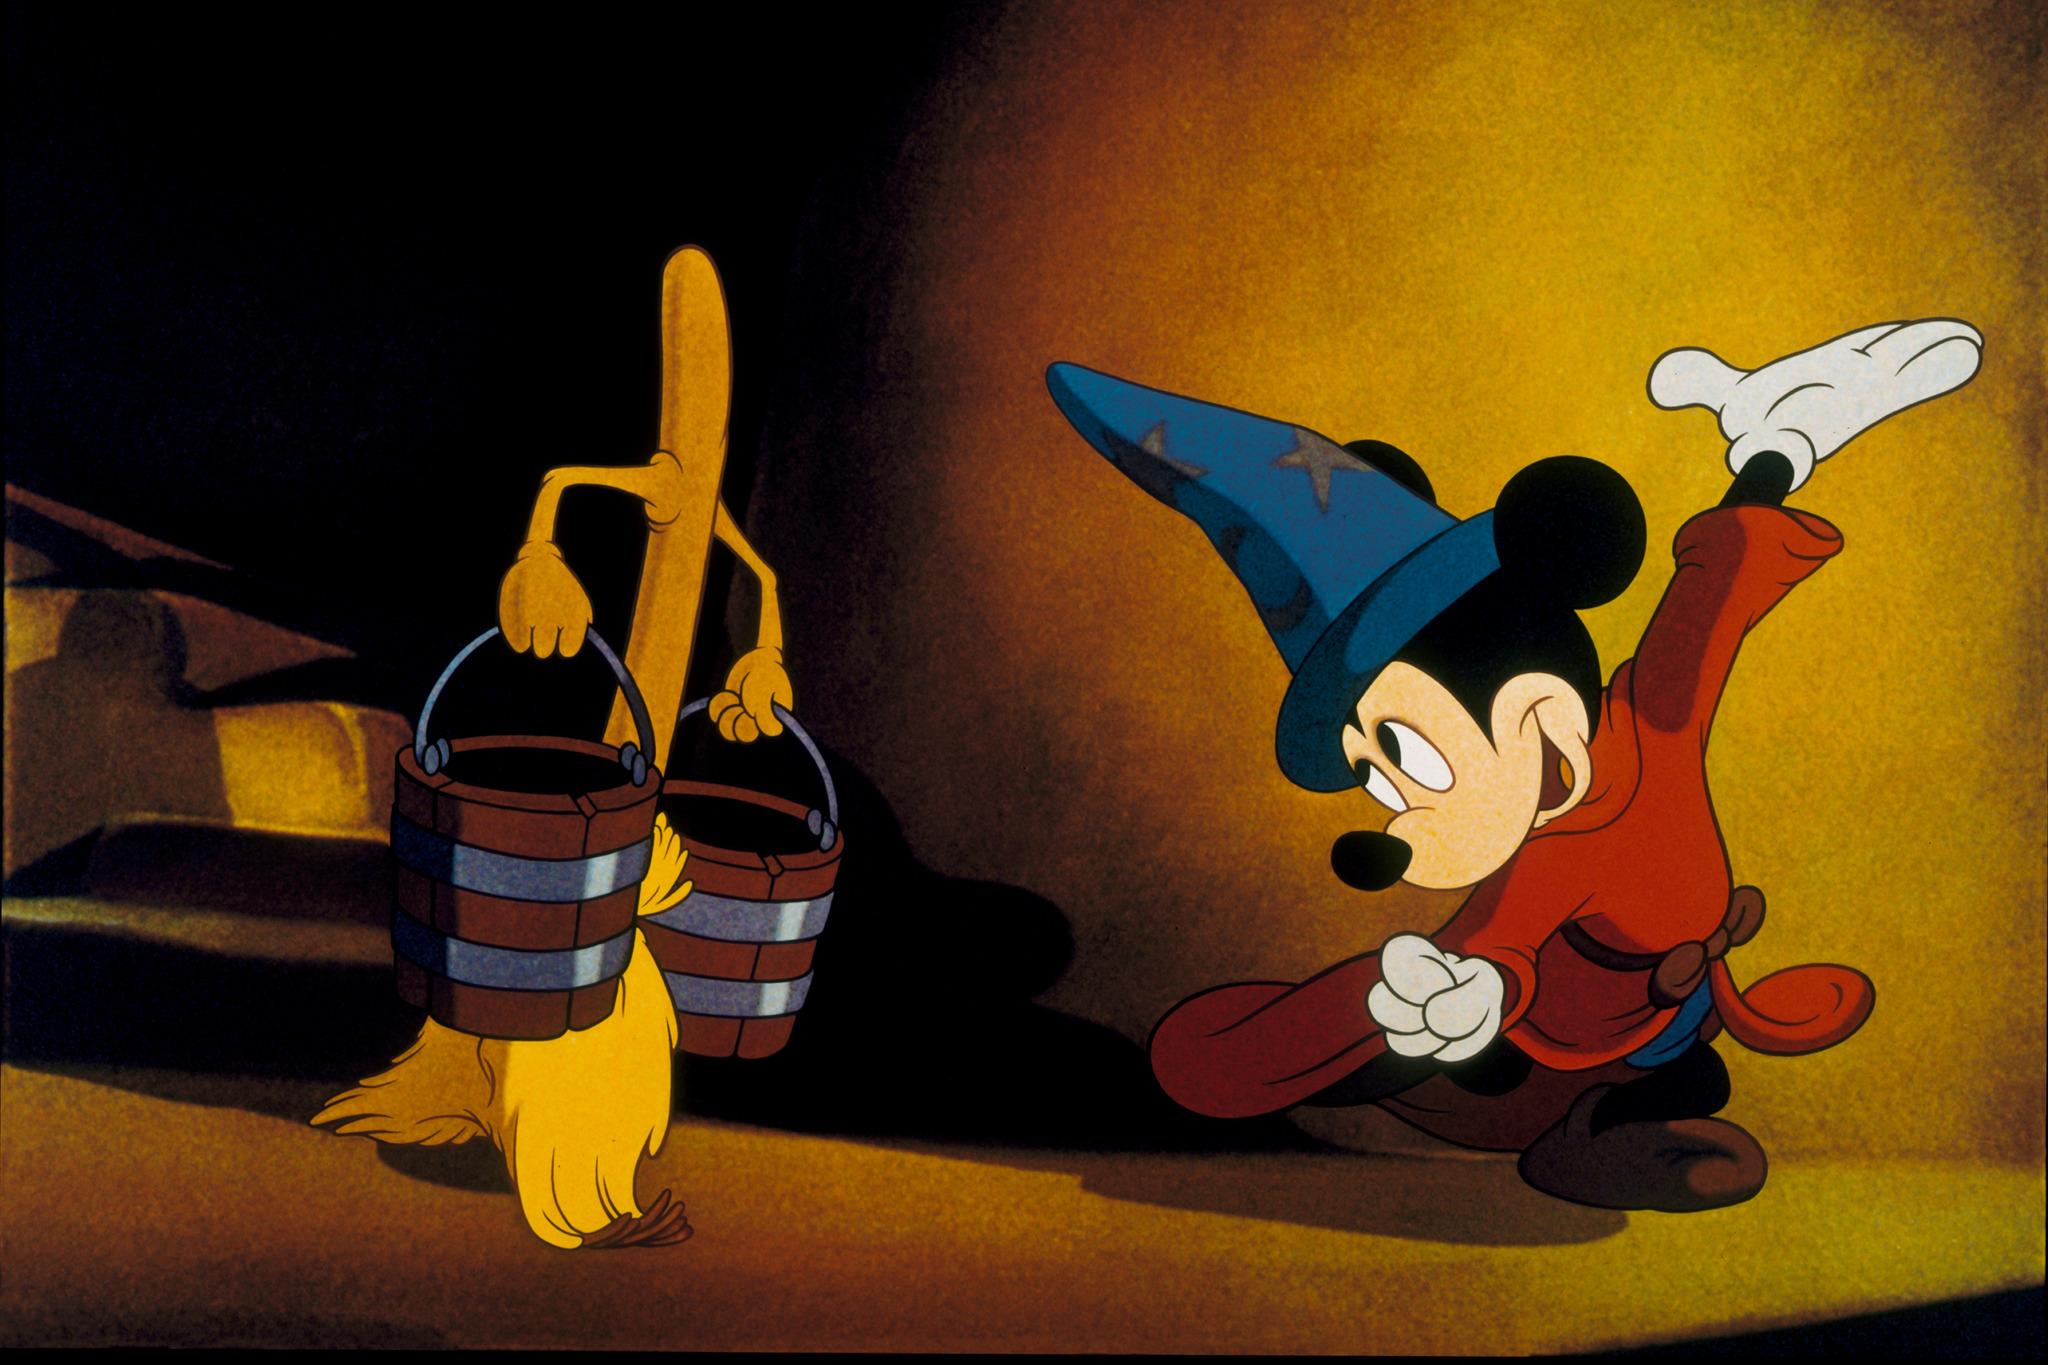 Best Disney films: Fantasia